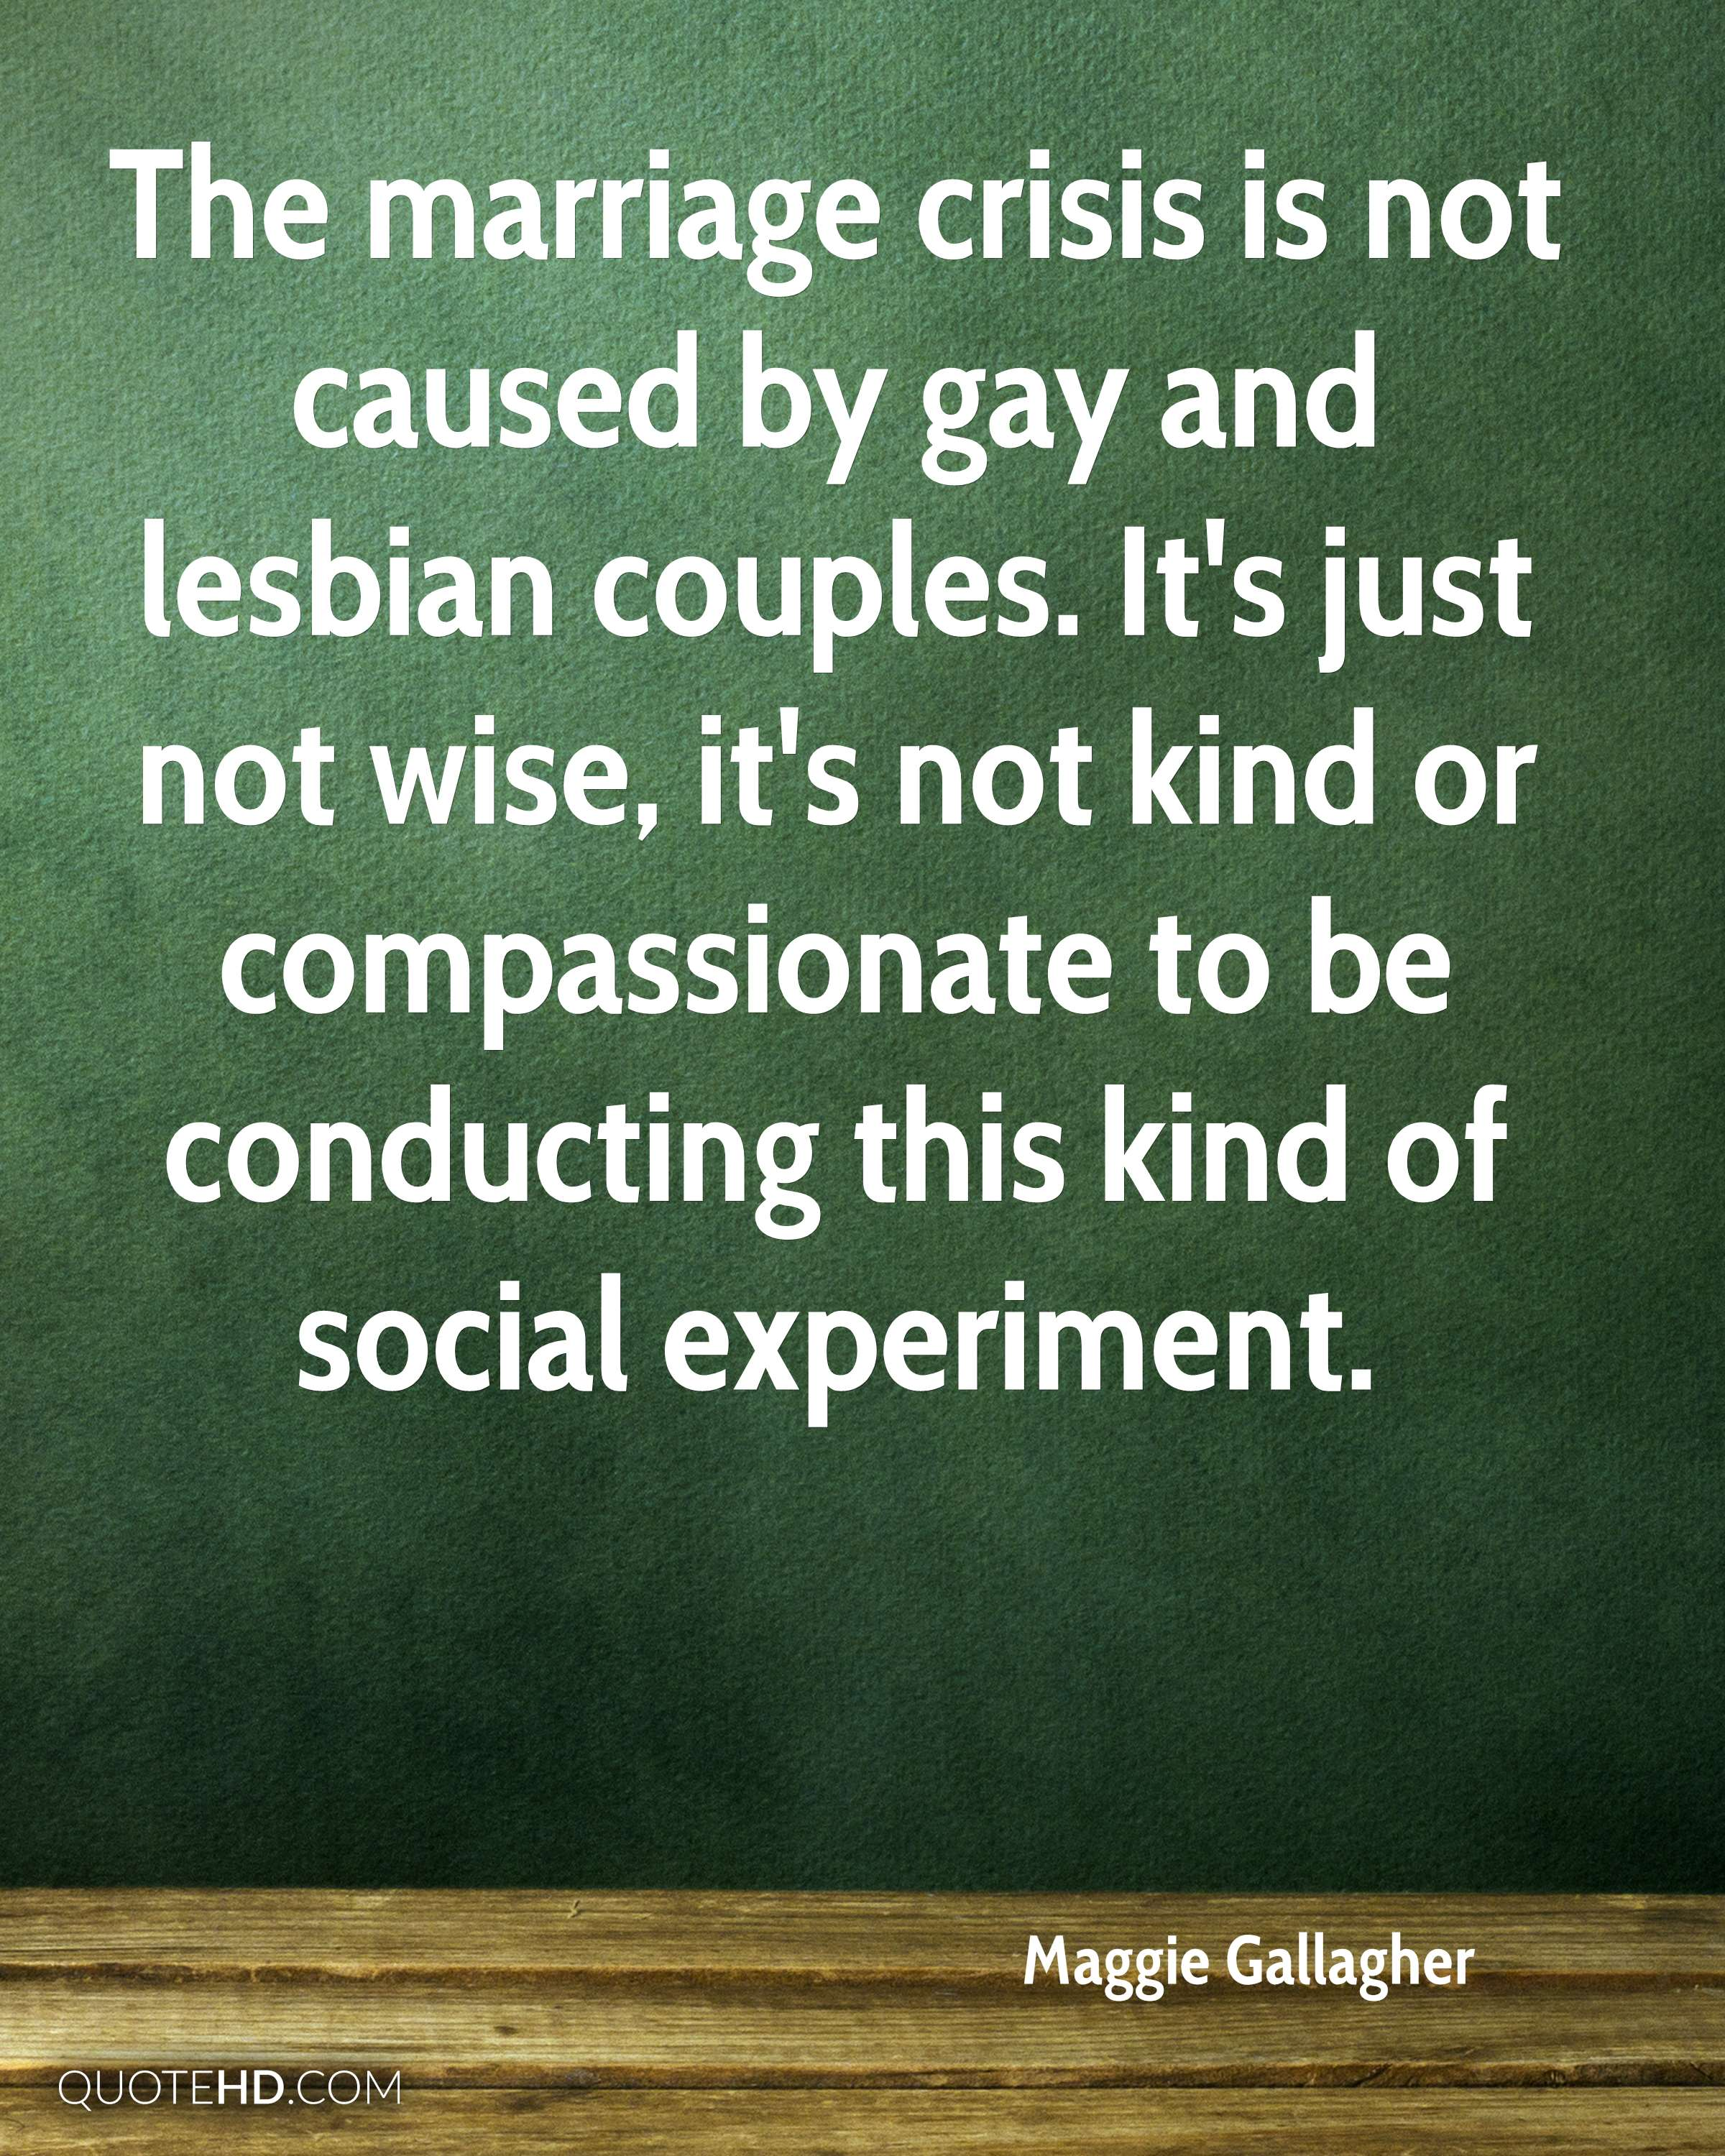 The marriage crisis is not caused by gay and lesbian couples. It's just not wise, it's not kind or compassionate to be conducting this kind of social experiment.